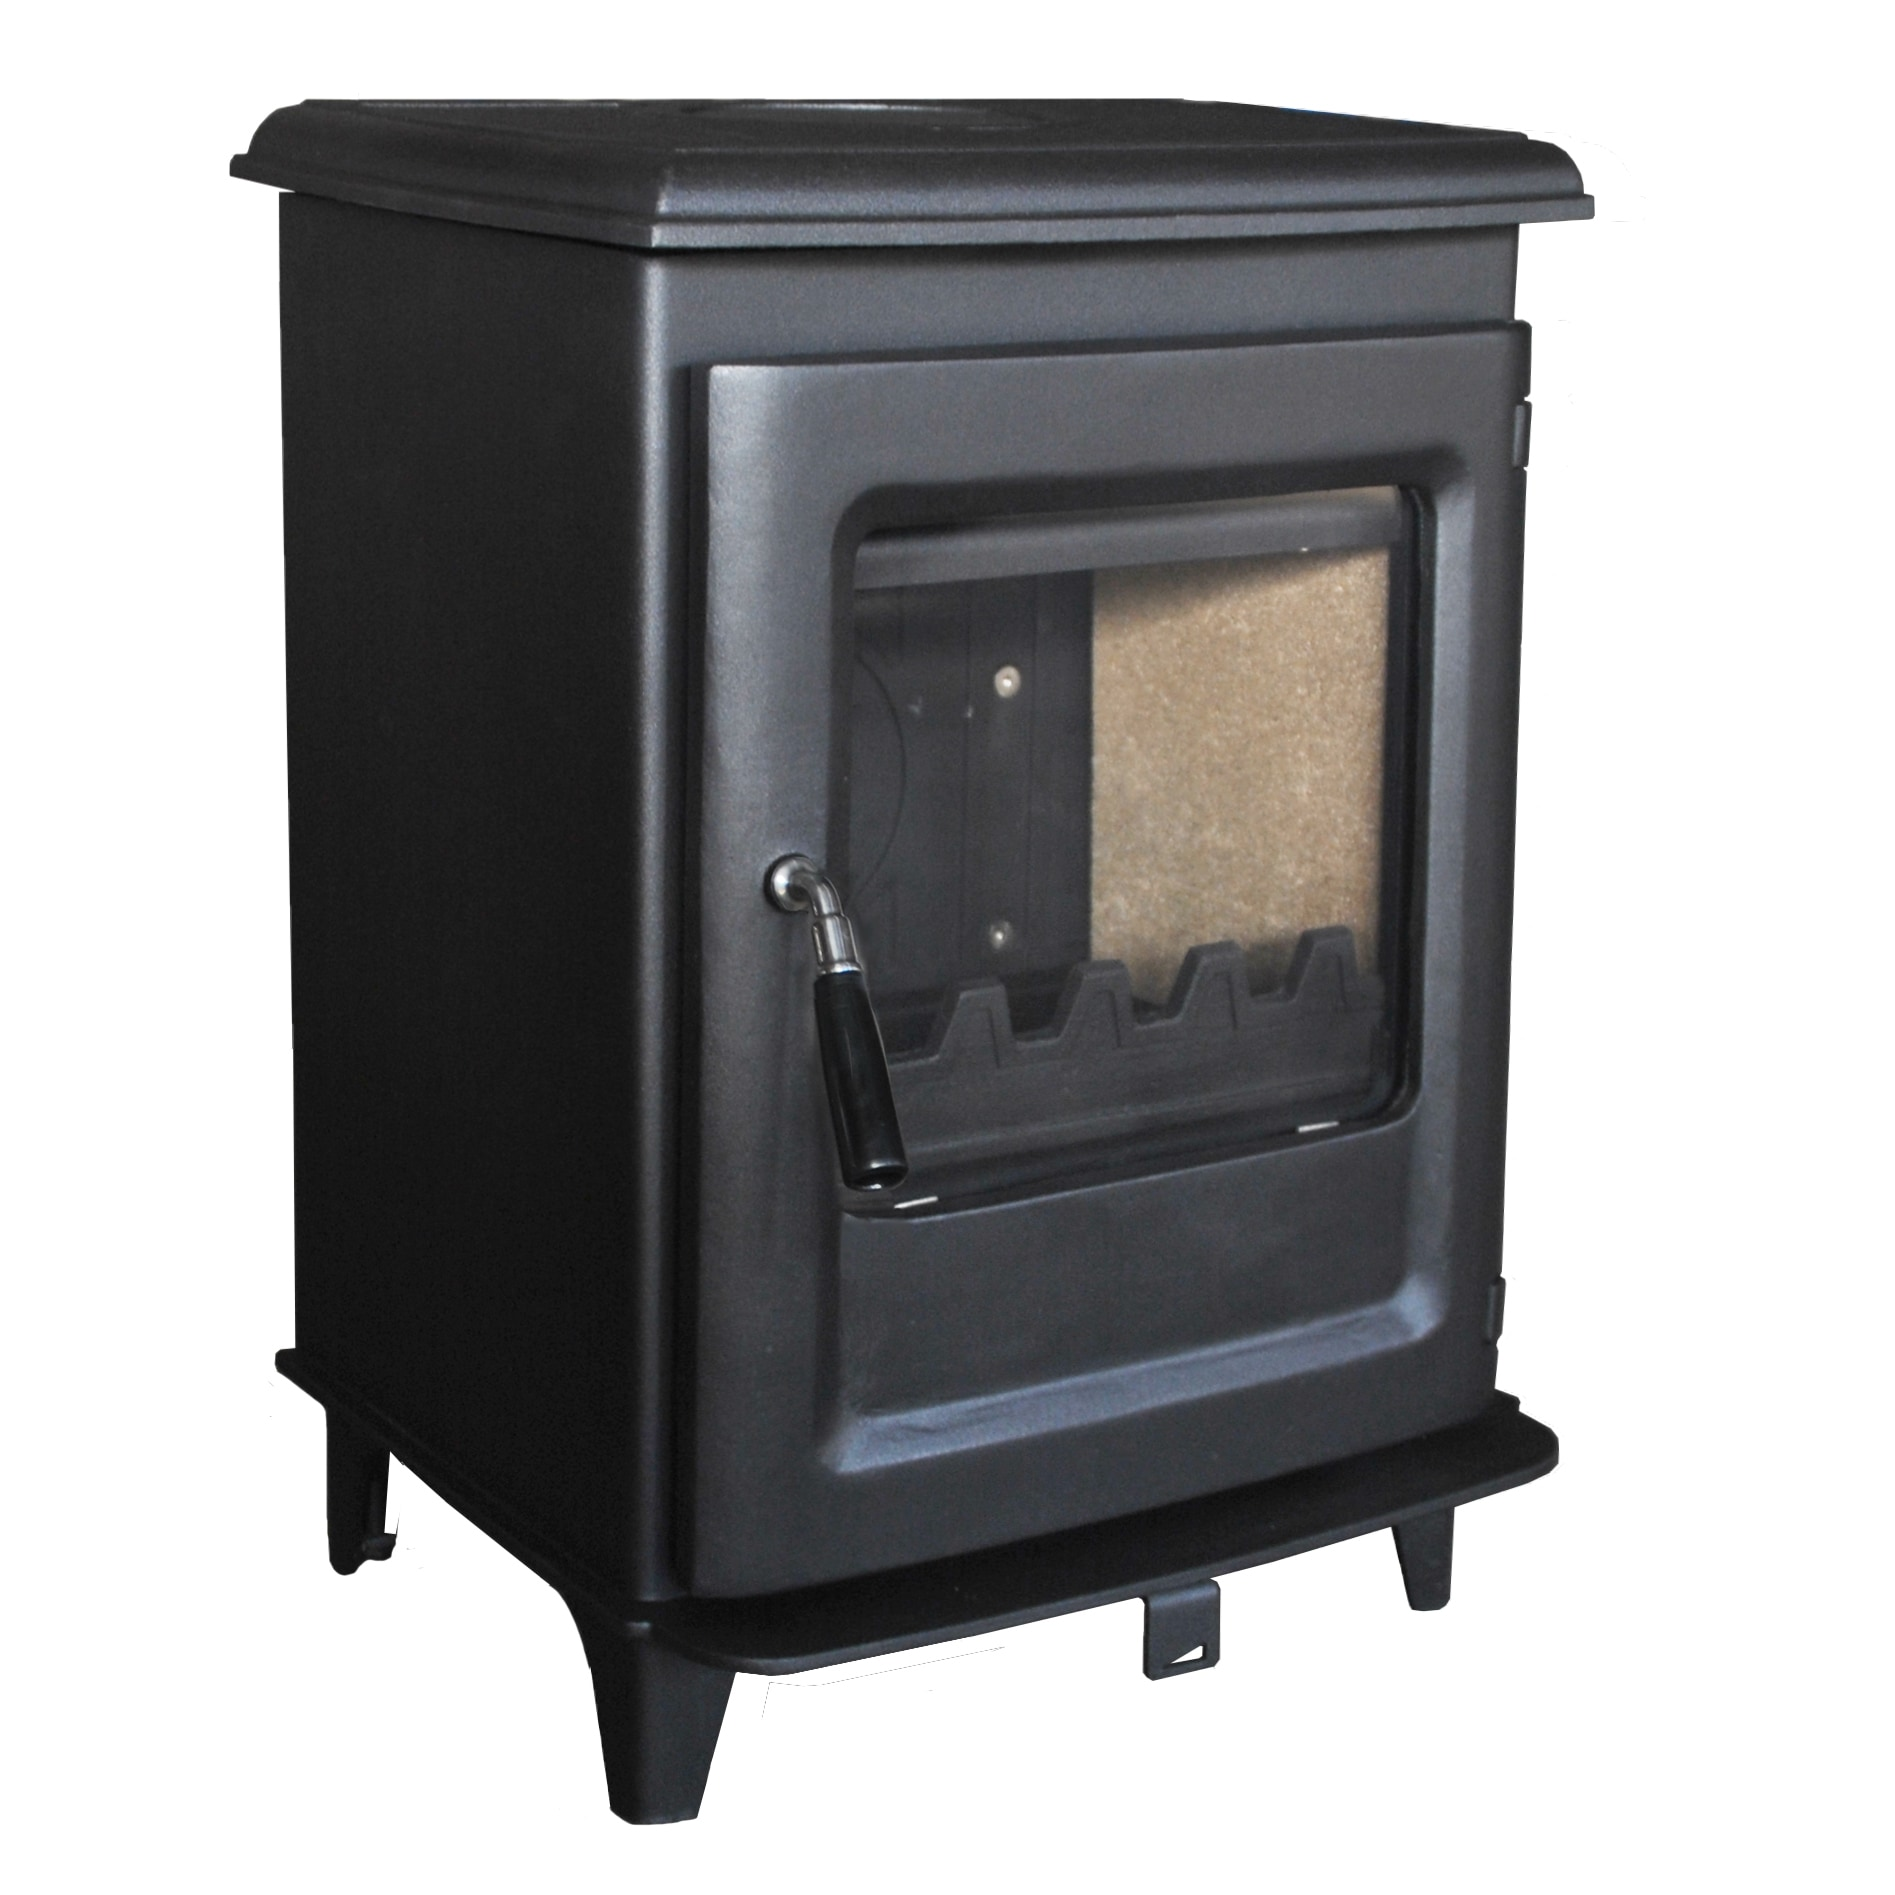 hi flame hiflame olymberyl hf905ub small 800 sq feet wood burning